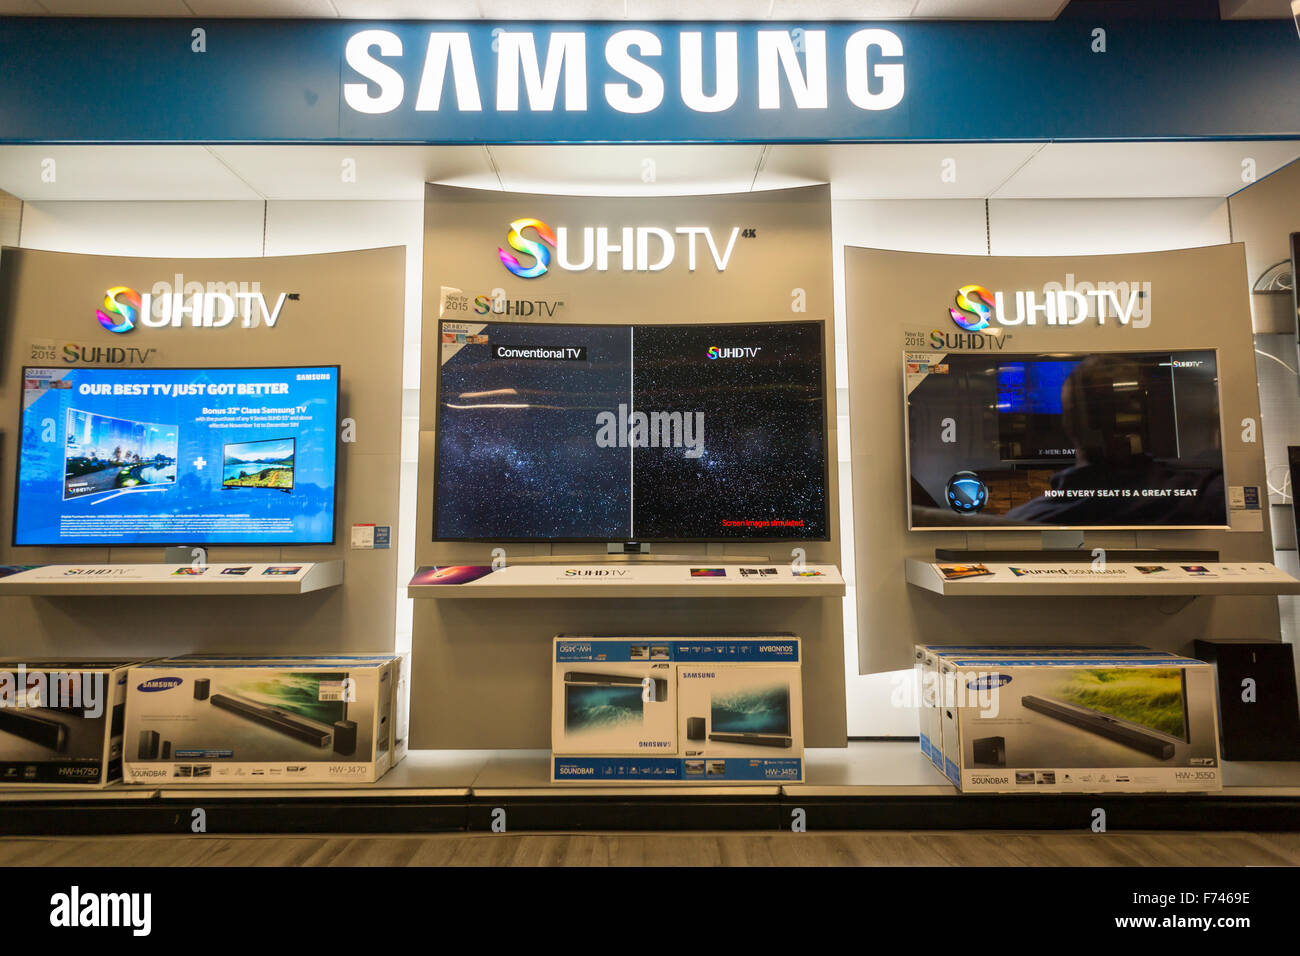 A display of Samsung 4K Ultra High Definition televisions in a Best Buy electronics store in Union Square in New - Stock Image